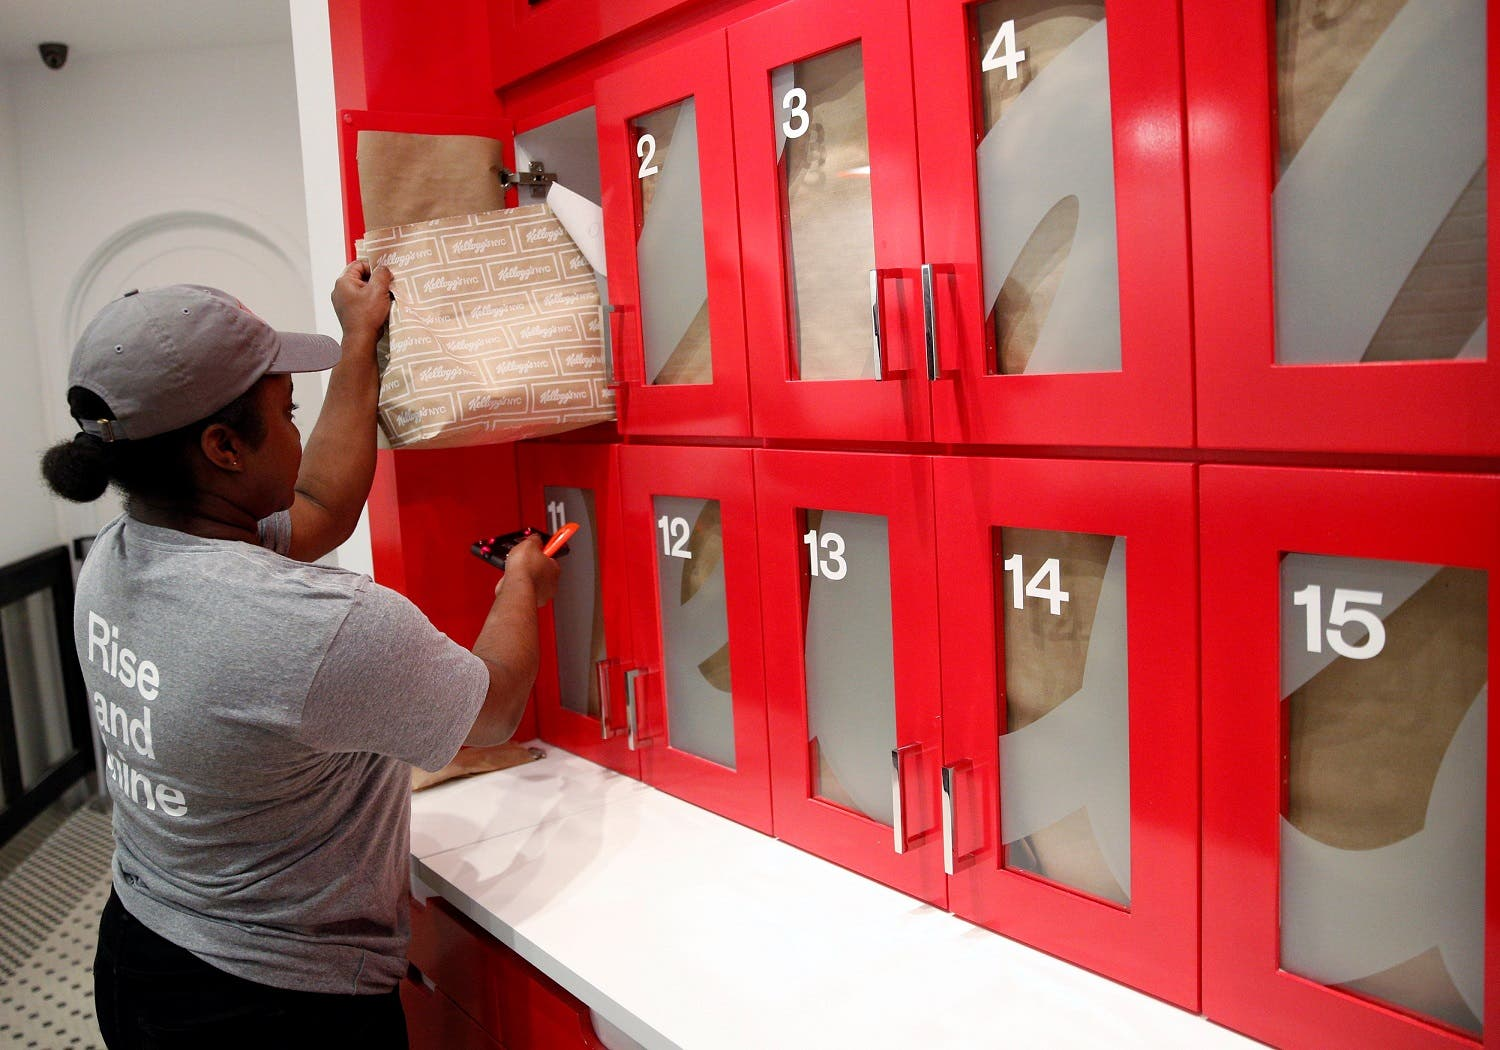 An employee retrieves a cereal order at the Kellogg's NYC cafe in Midtown Manhattan in New York City, U.S., June 29, 2016. REUTERS